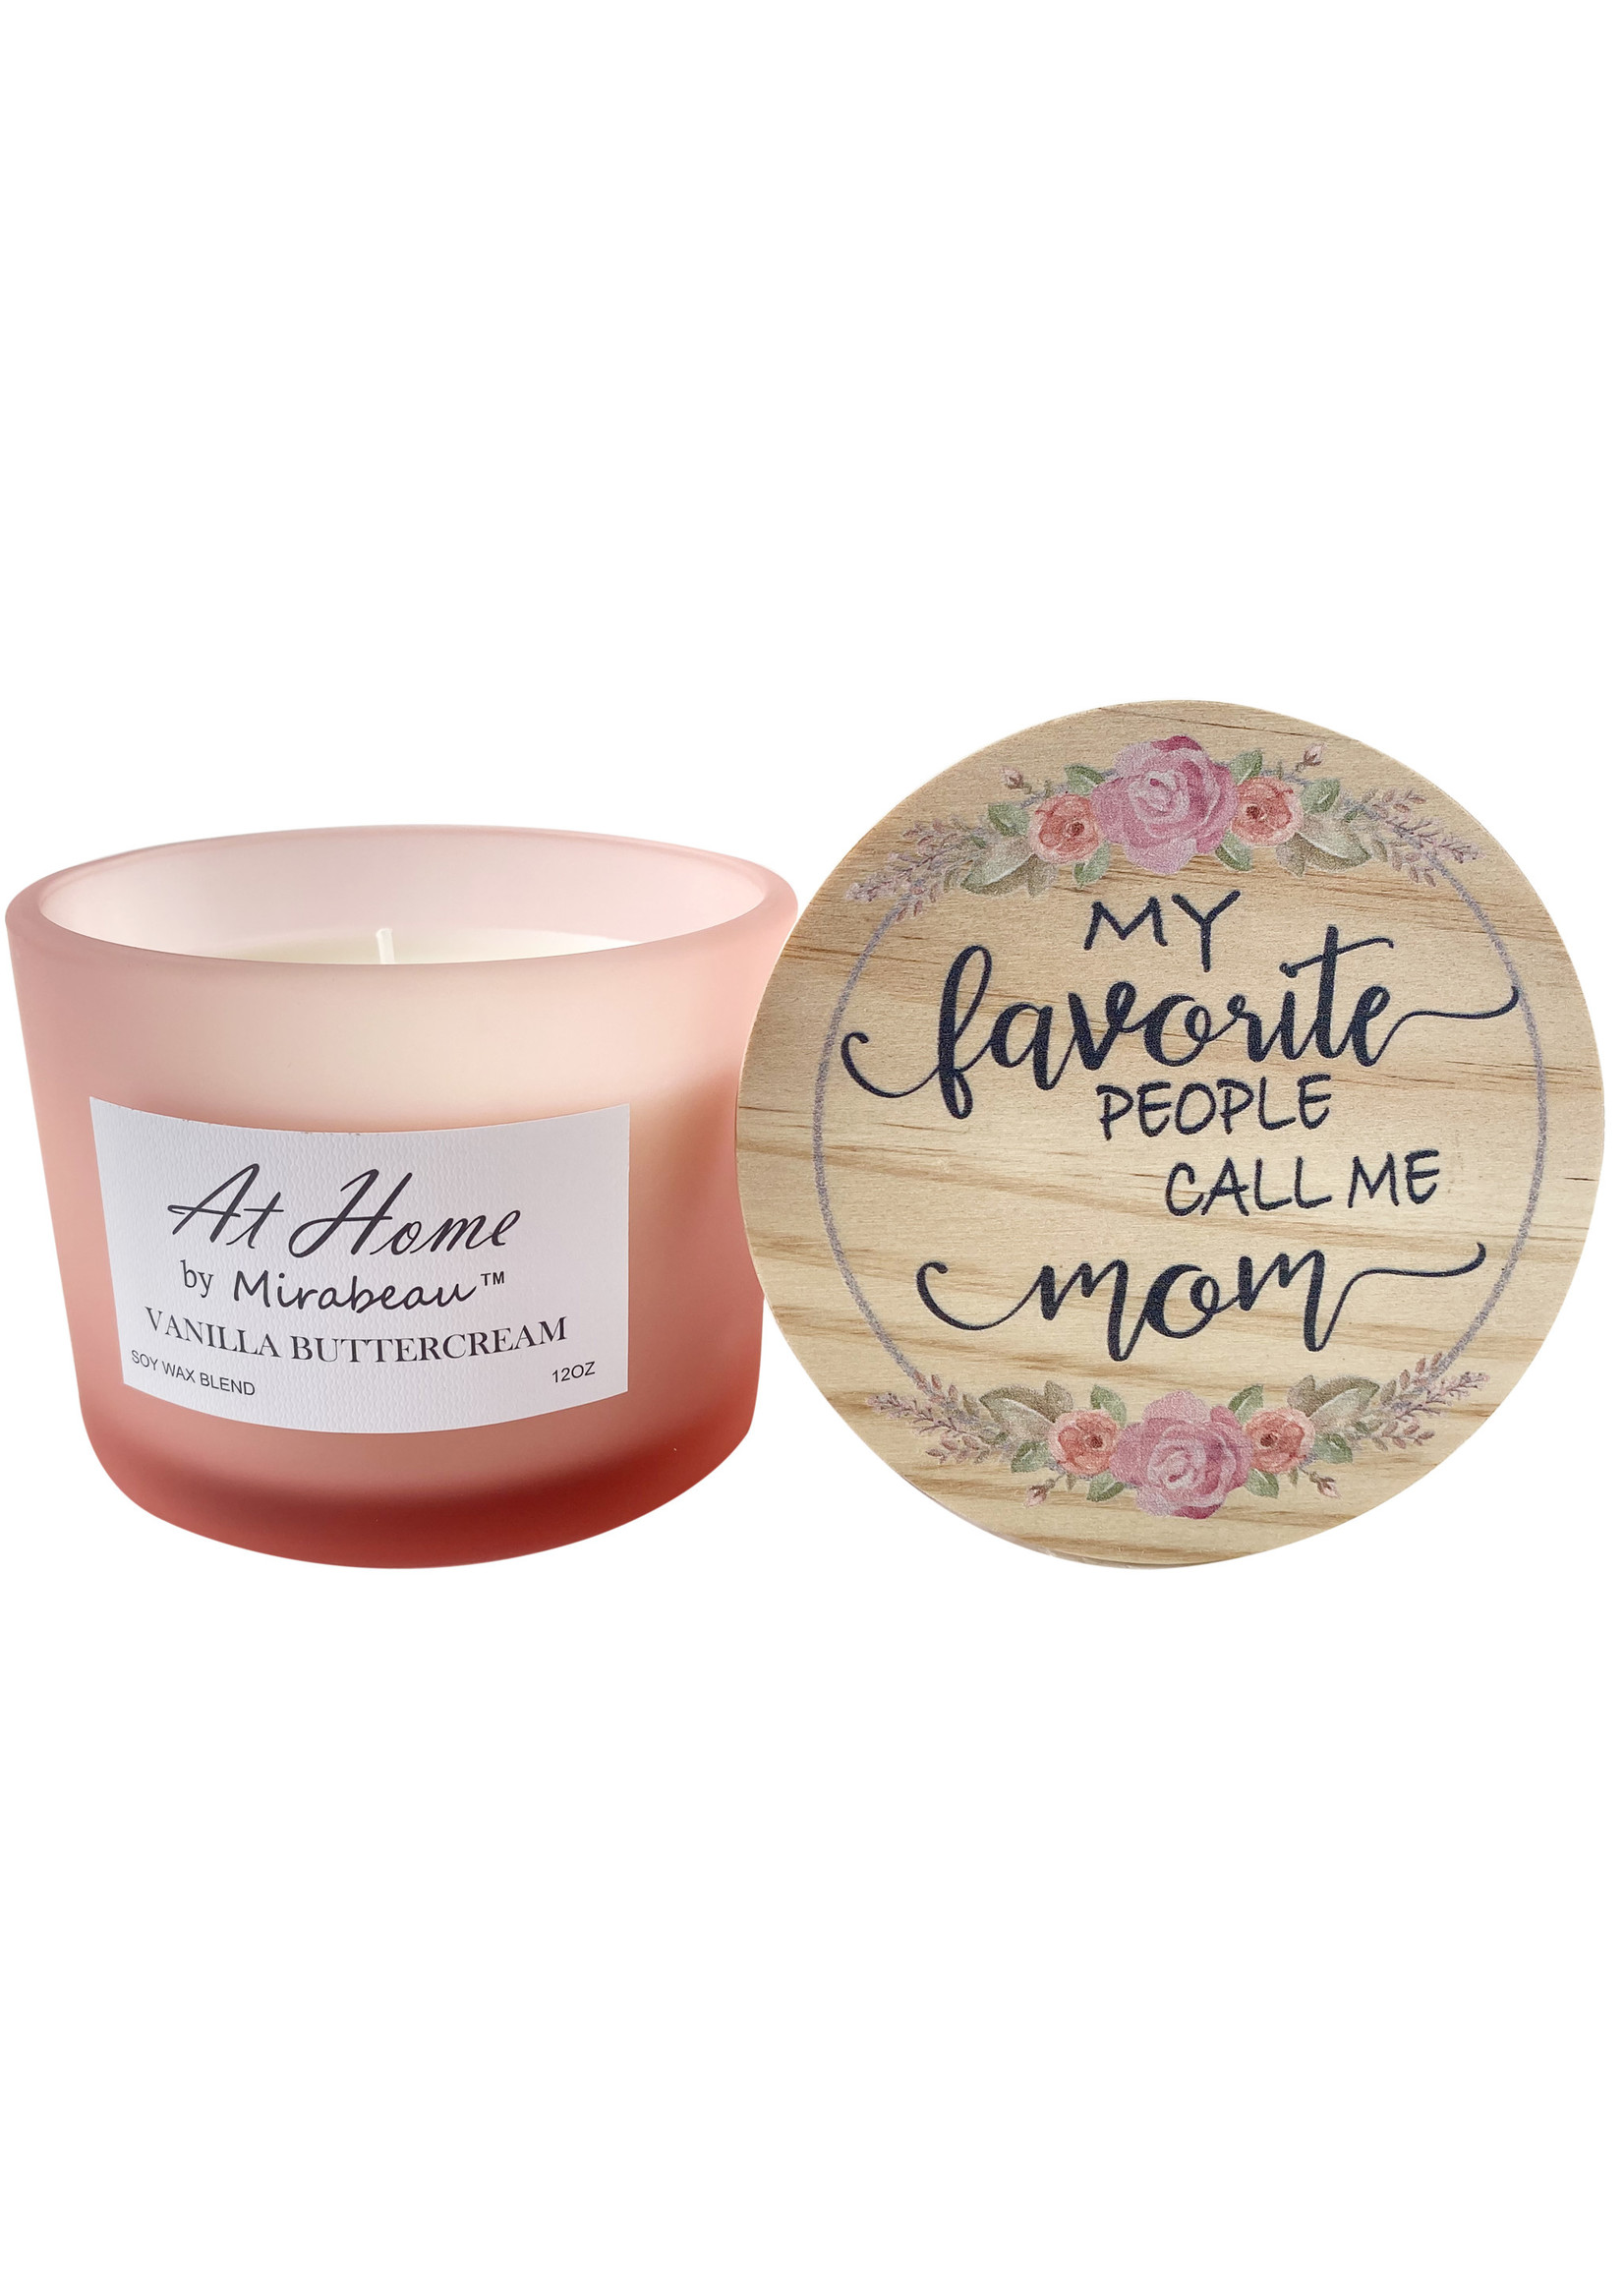 At Home by Mirabeau 12 oz Candle